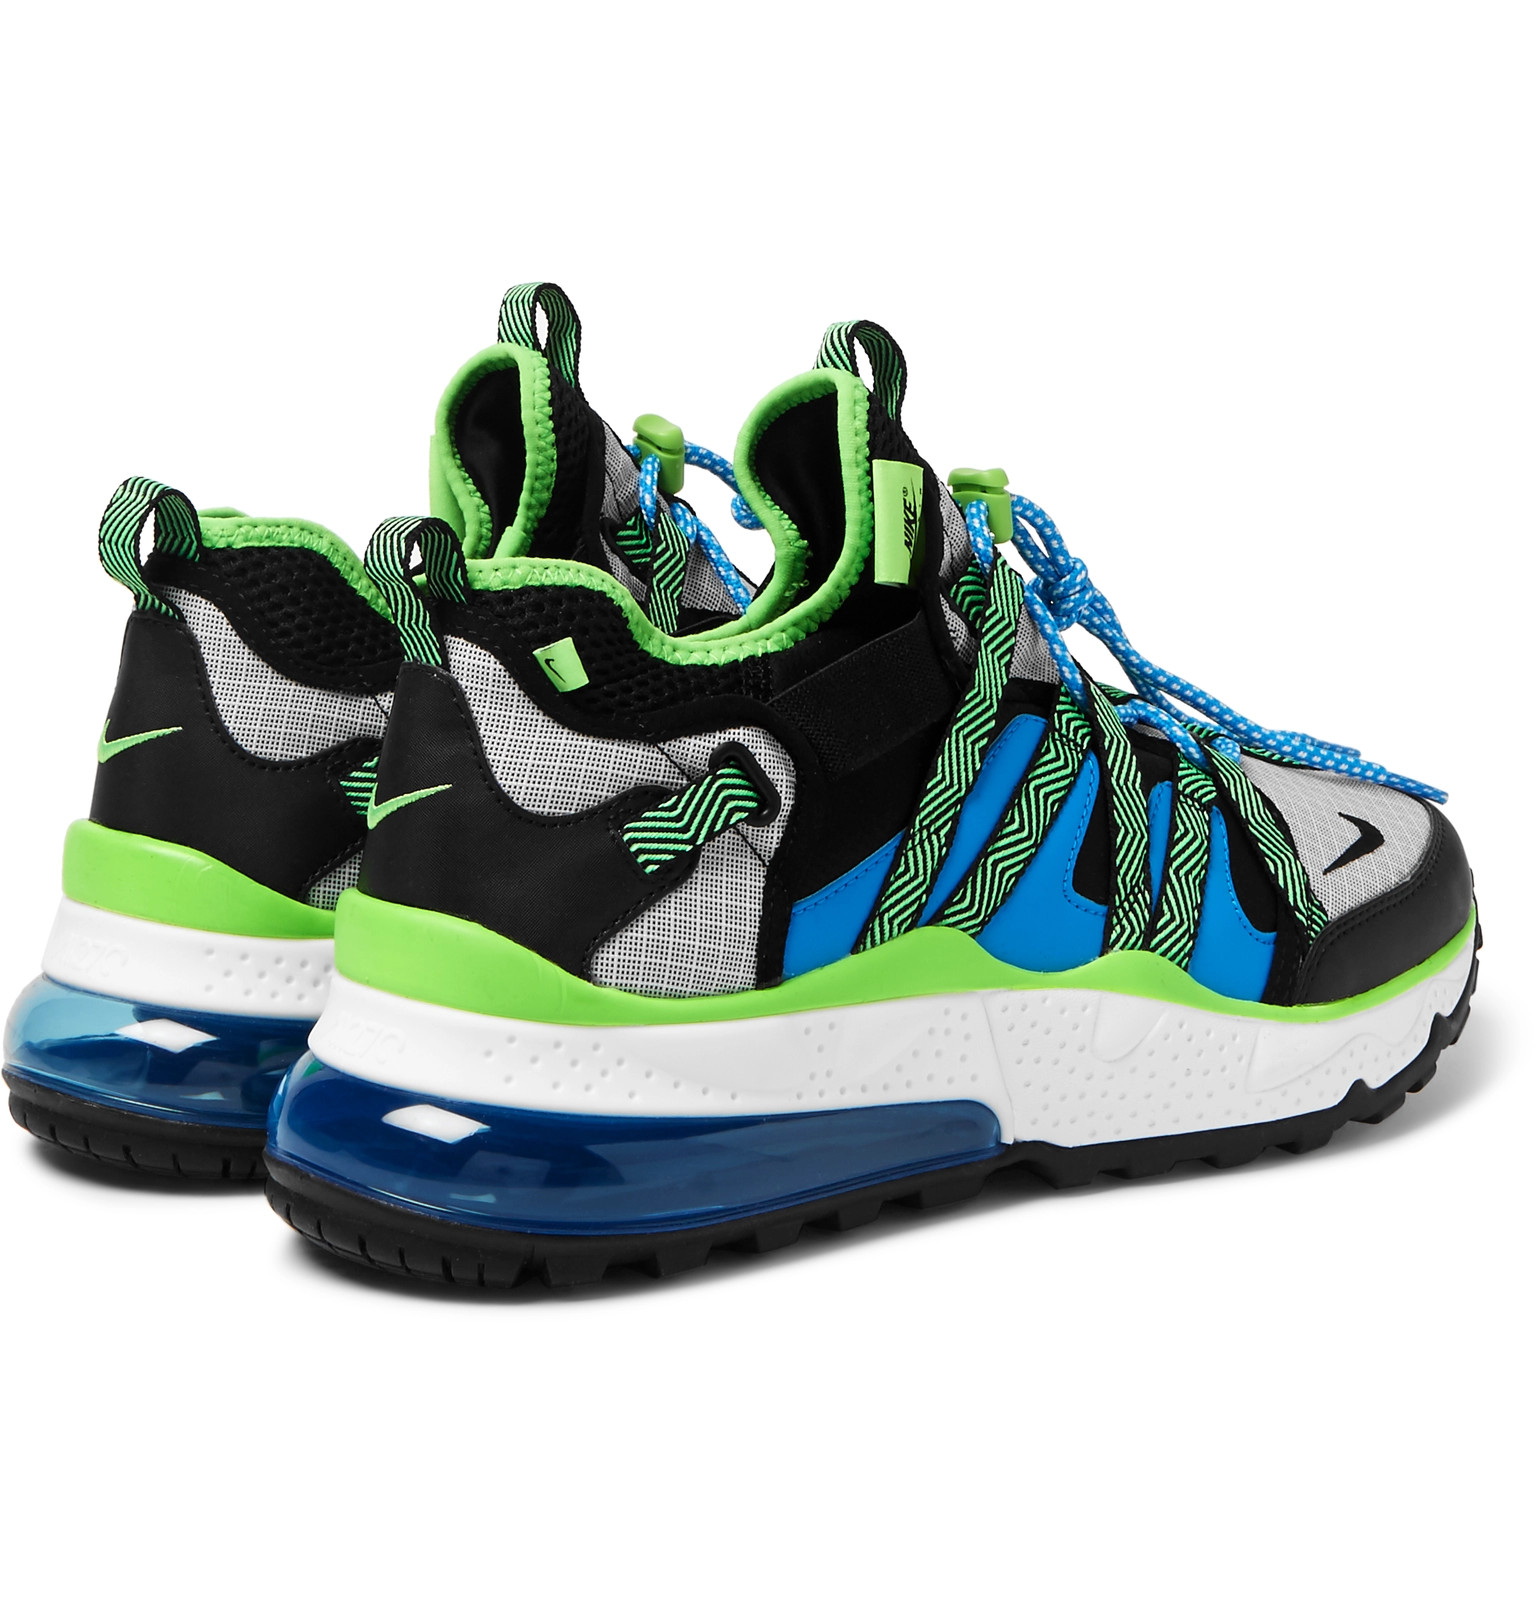 check out 7f501 cd399 NikeAir Max 270 Bowfin Mesh and Nylon Sneakers